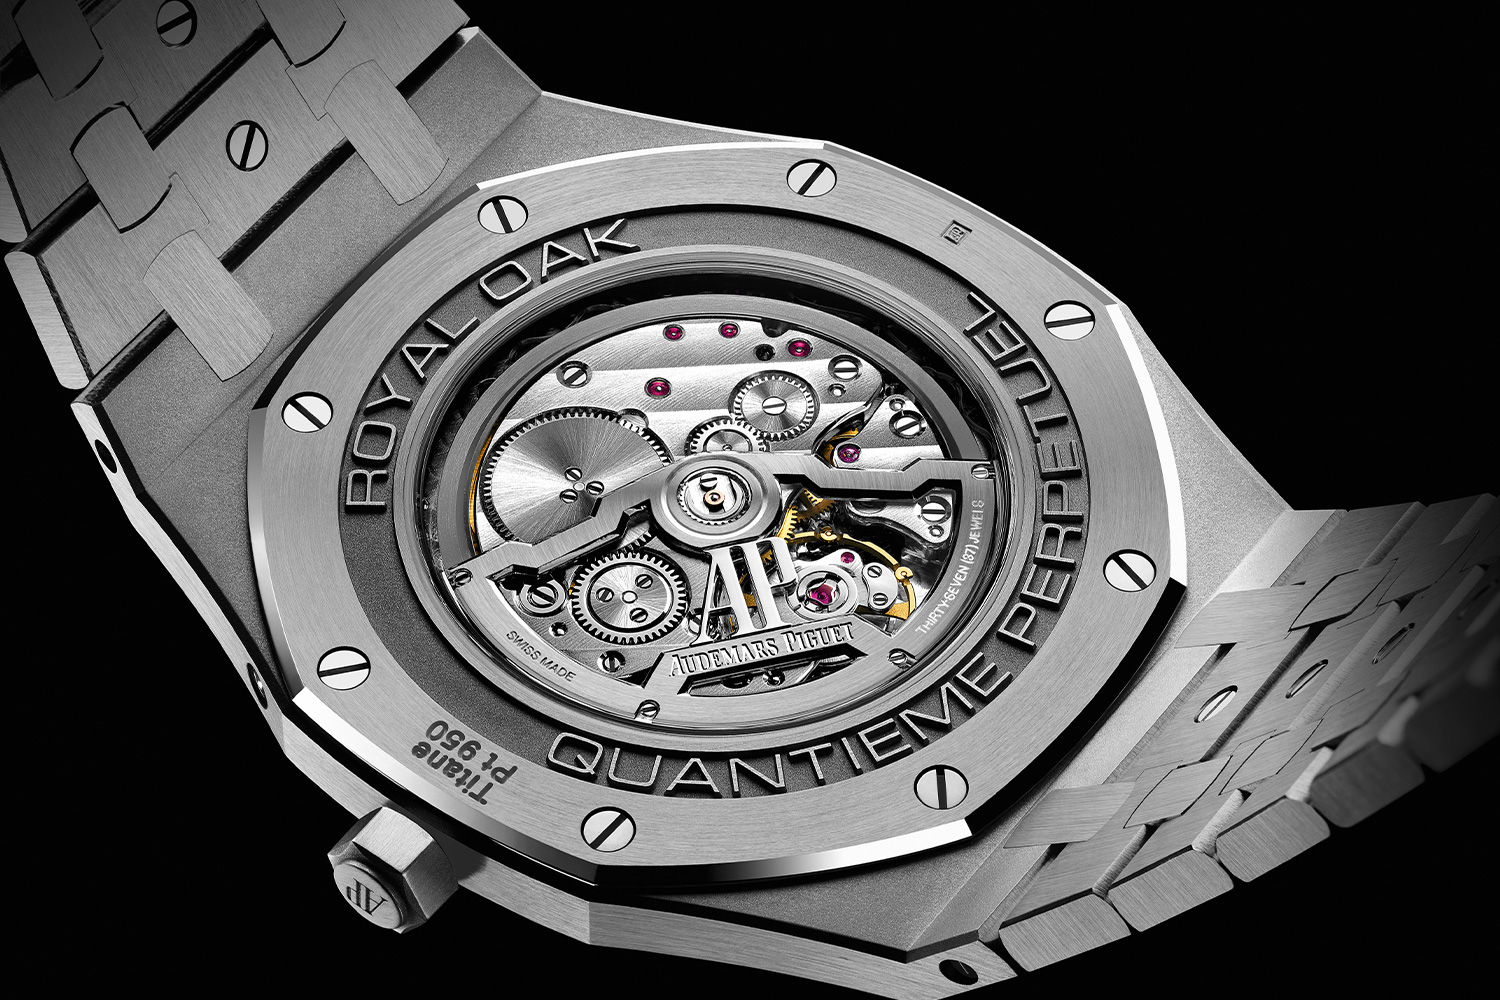 The new Calibre 5133 has a total thickness of 2.89mm